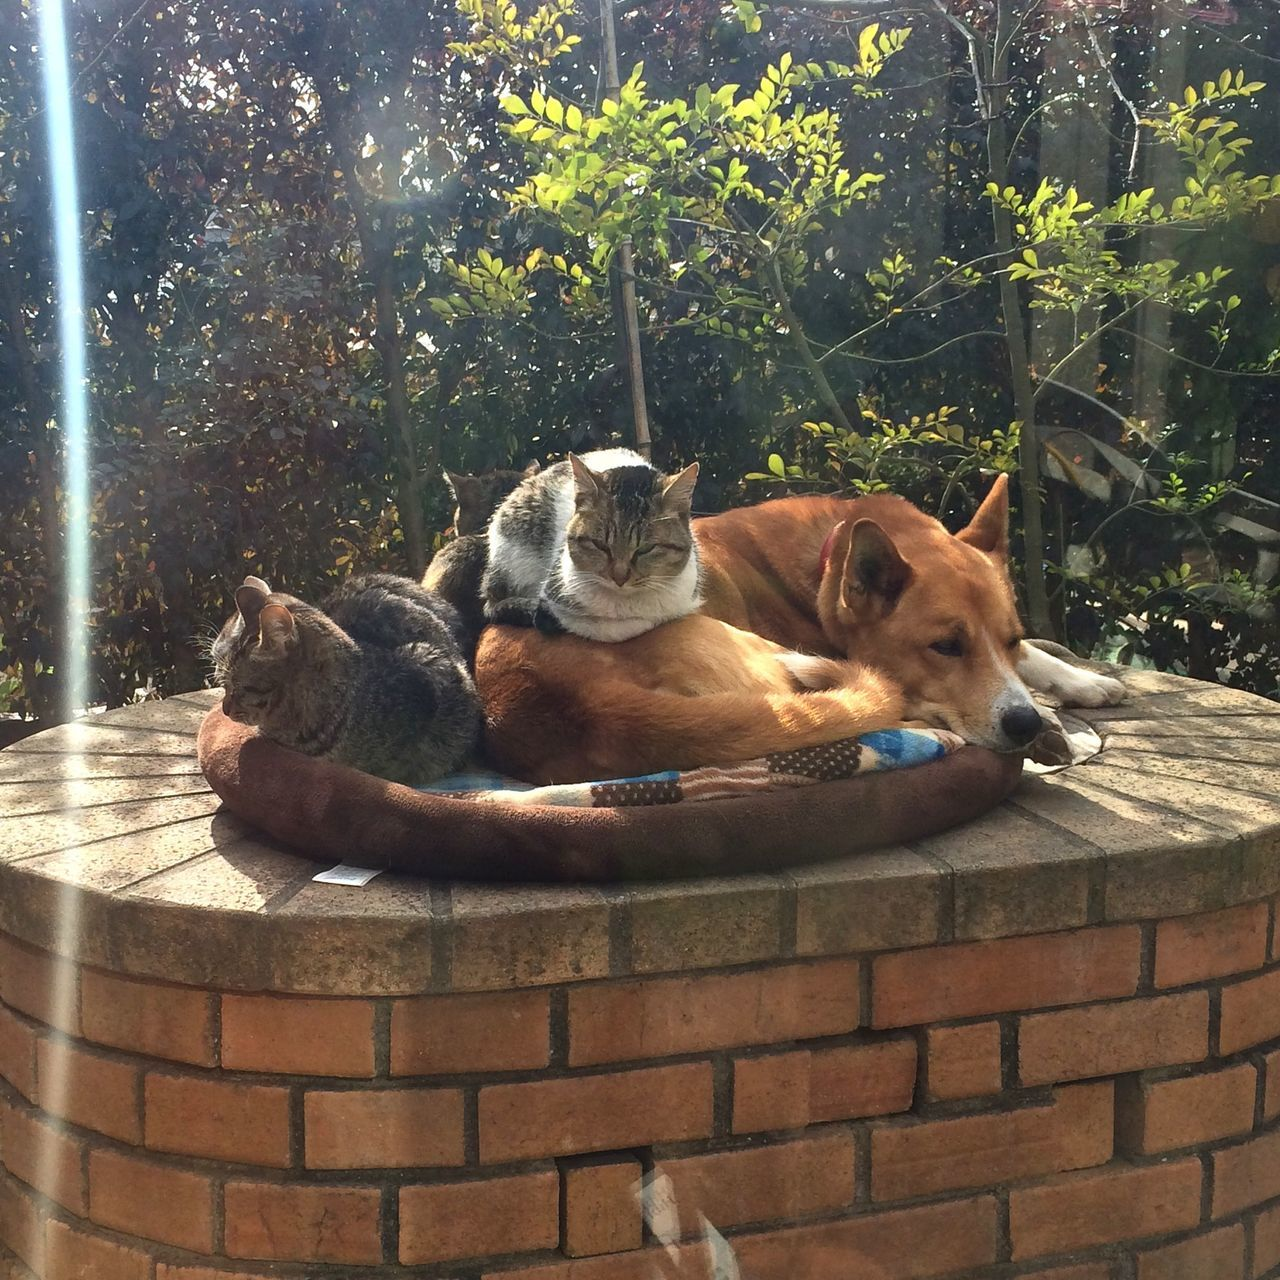 My dog and cats. Dog Cats Funny FUNNY ANIMALS